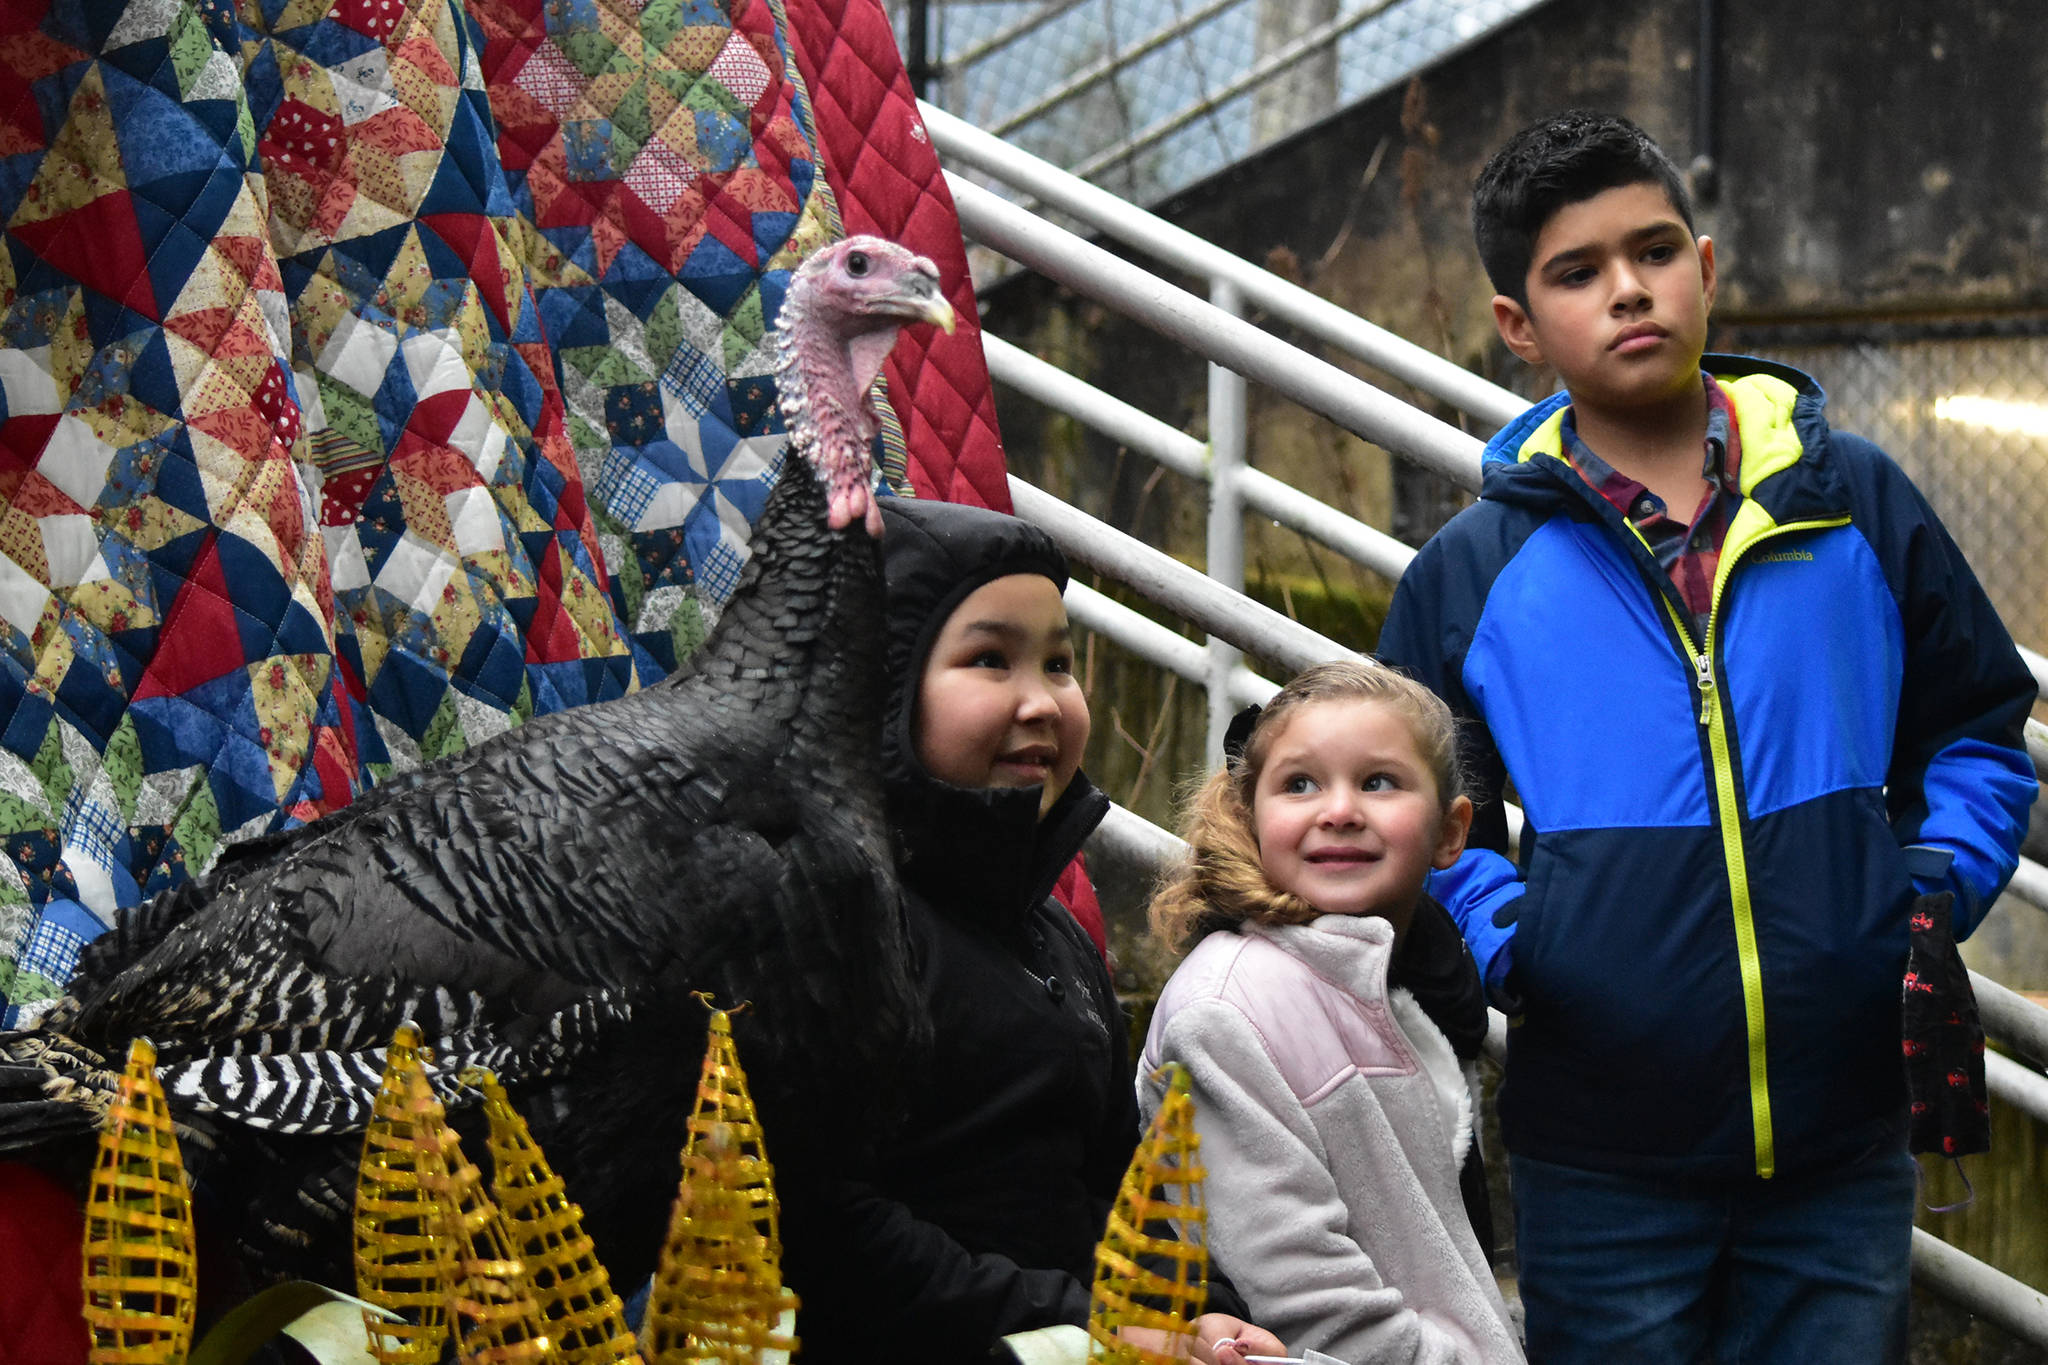 Peter Segall / Juneau Empire From right to left, Braden De Varny, 11; Cat De Varny, 4; Tazlina Heckman, 9; and a turkey have their photo taken outside Juneau-Douglas High School: Yadaa.at Kalé on Wednesday for a fundraiser for the school's vocational programs.